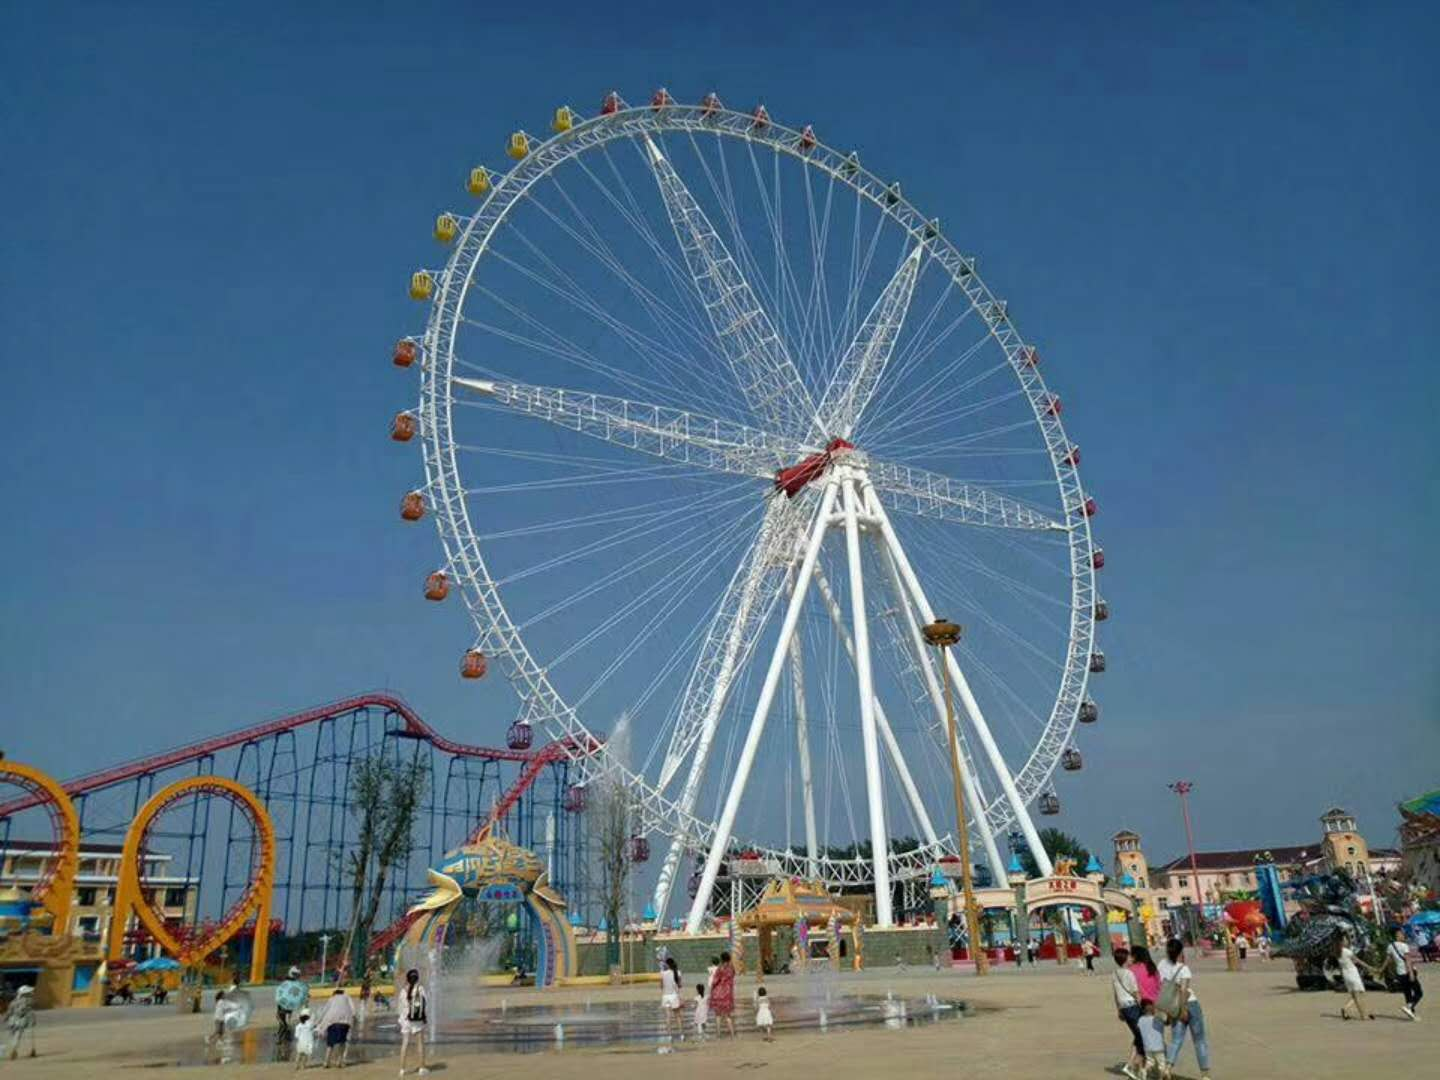 A Ferris wheel sometimes called in the case of the very tallest examples giant wheel is an amusement ride consisting of a rotating upright wheel with multiple